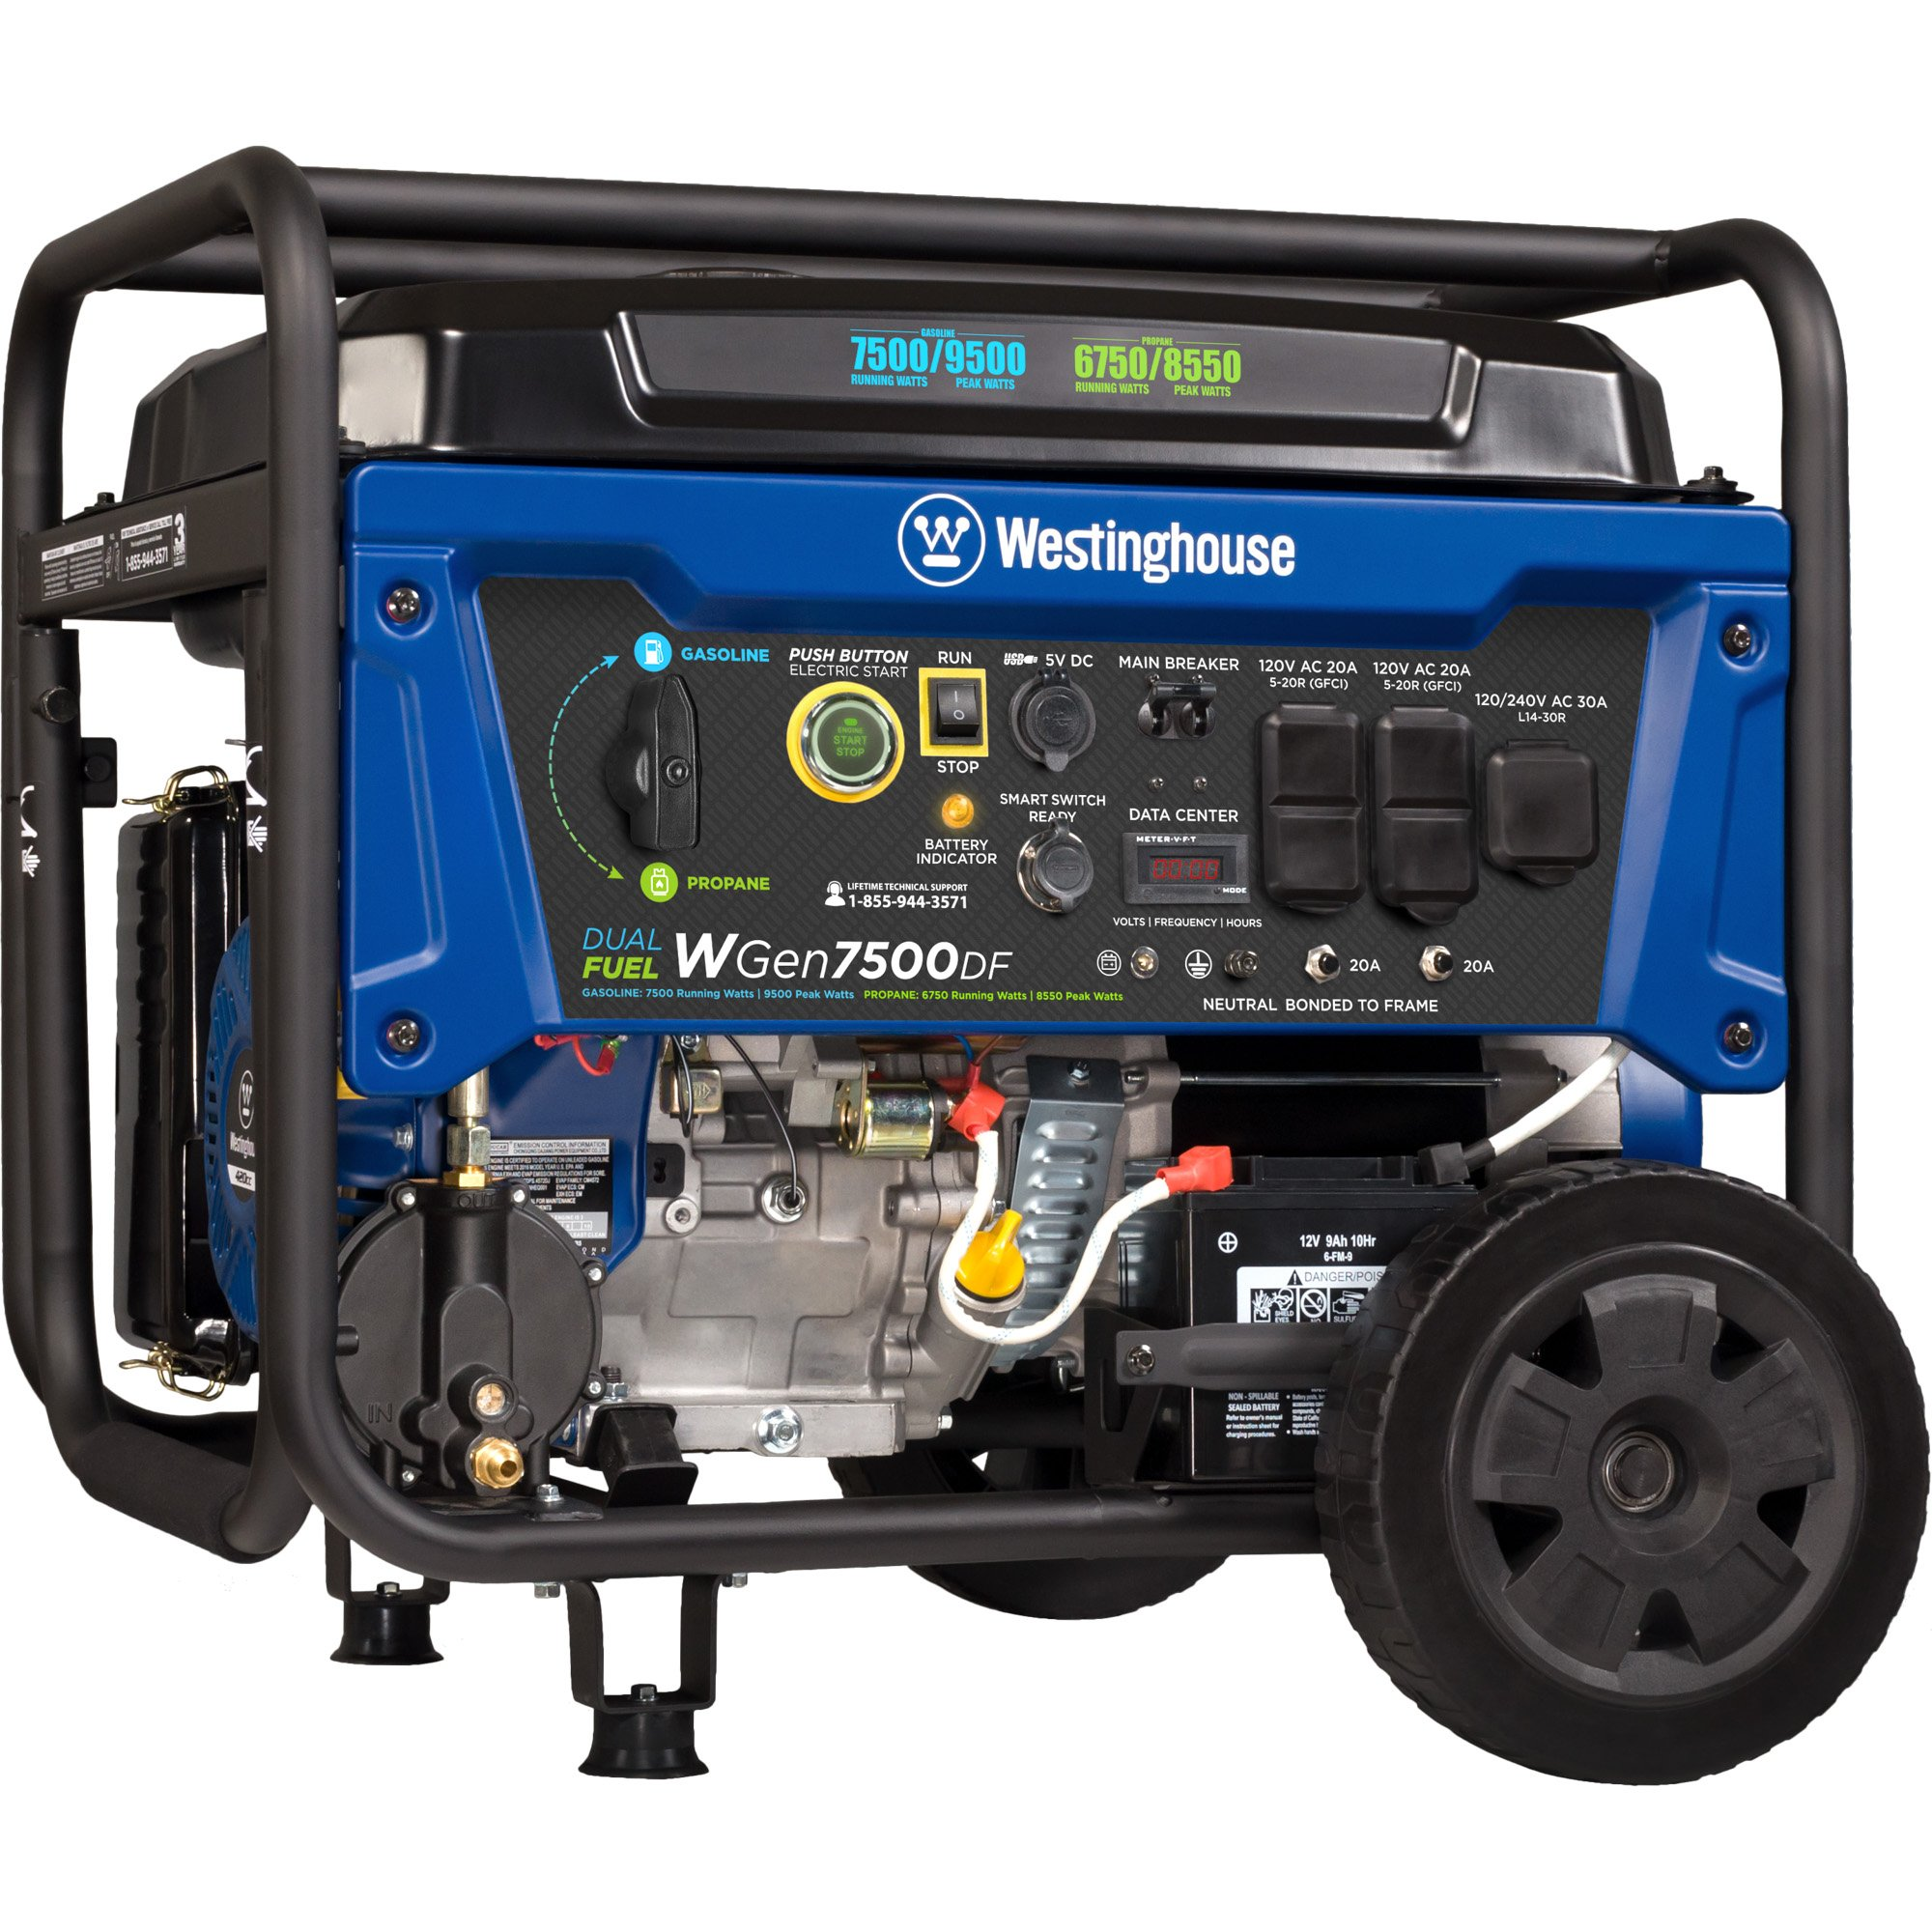 Westinghouse WGen7500DF Dual Fuel Portable Generator 7500 Rated & 9500 Peak Watts, Gas Or Propane